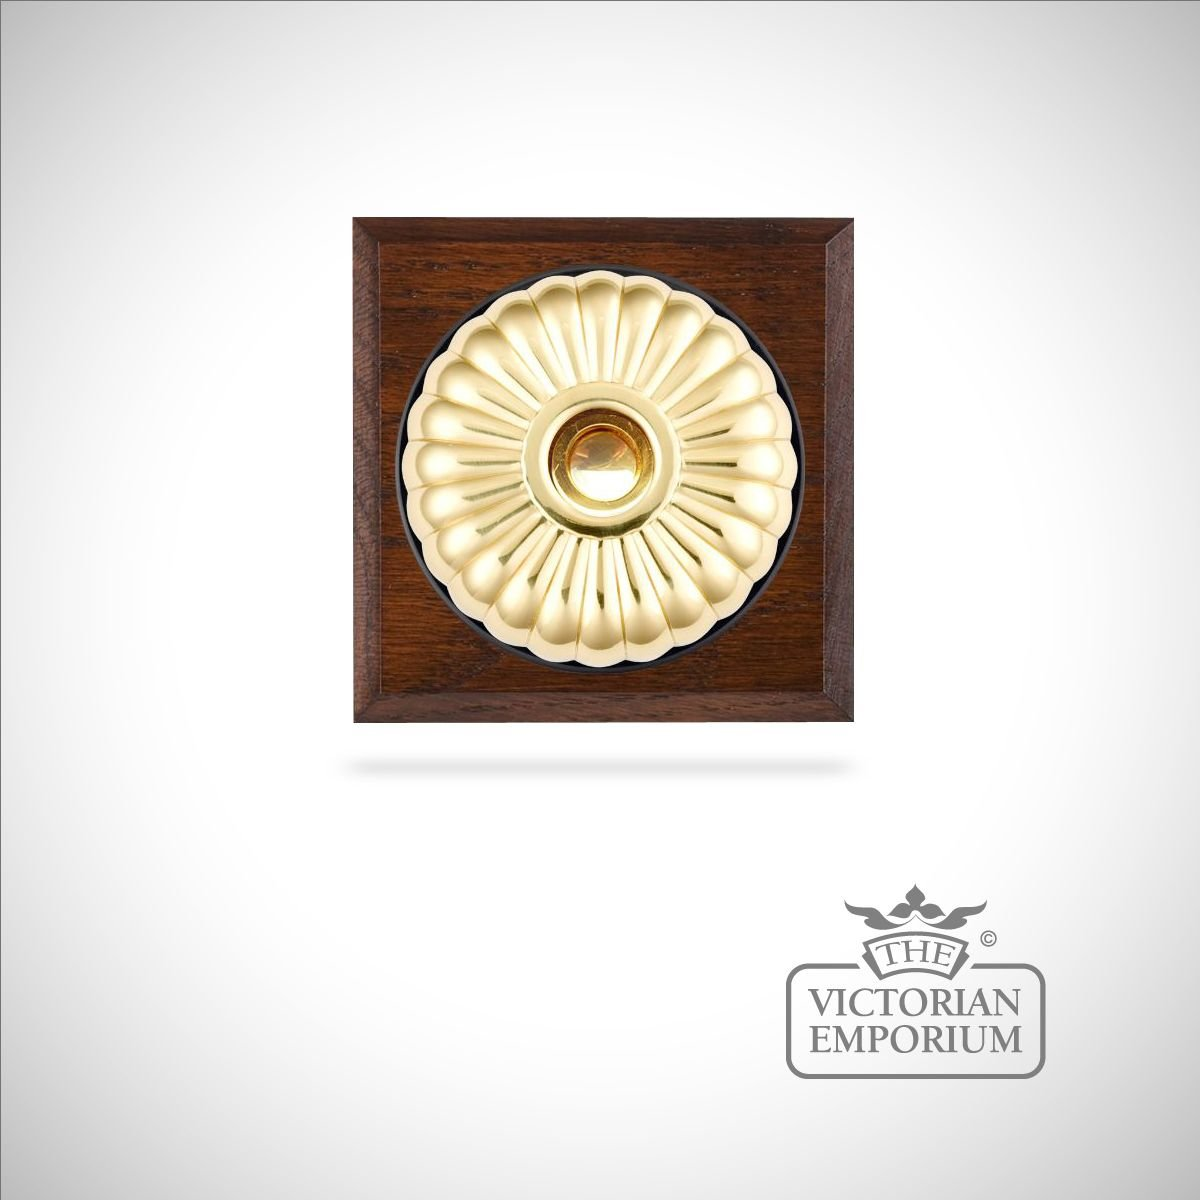 Reproduction victorian wallpaper guide the victorian emporium - Decorative Fluted Victorian Light Switch 1 Gang